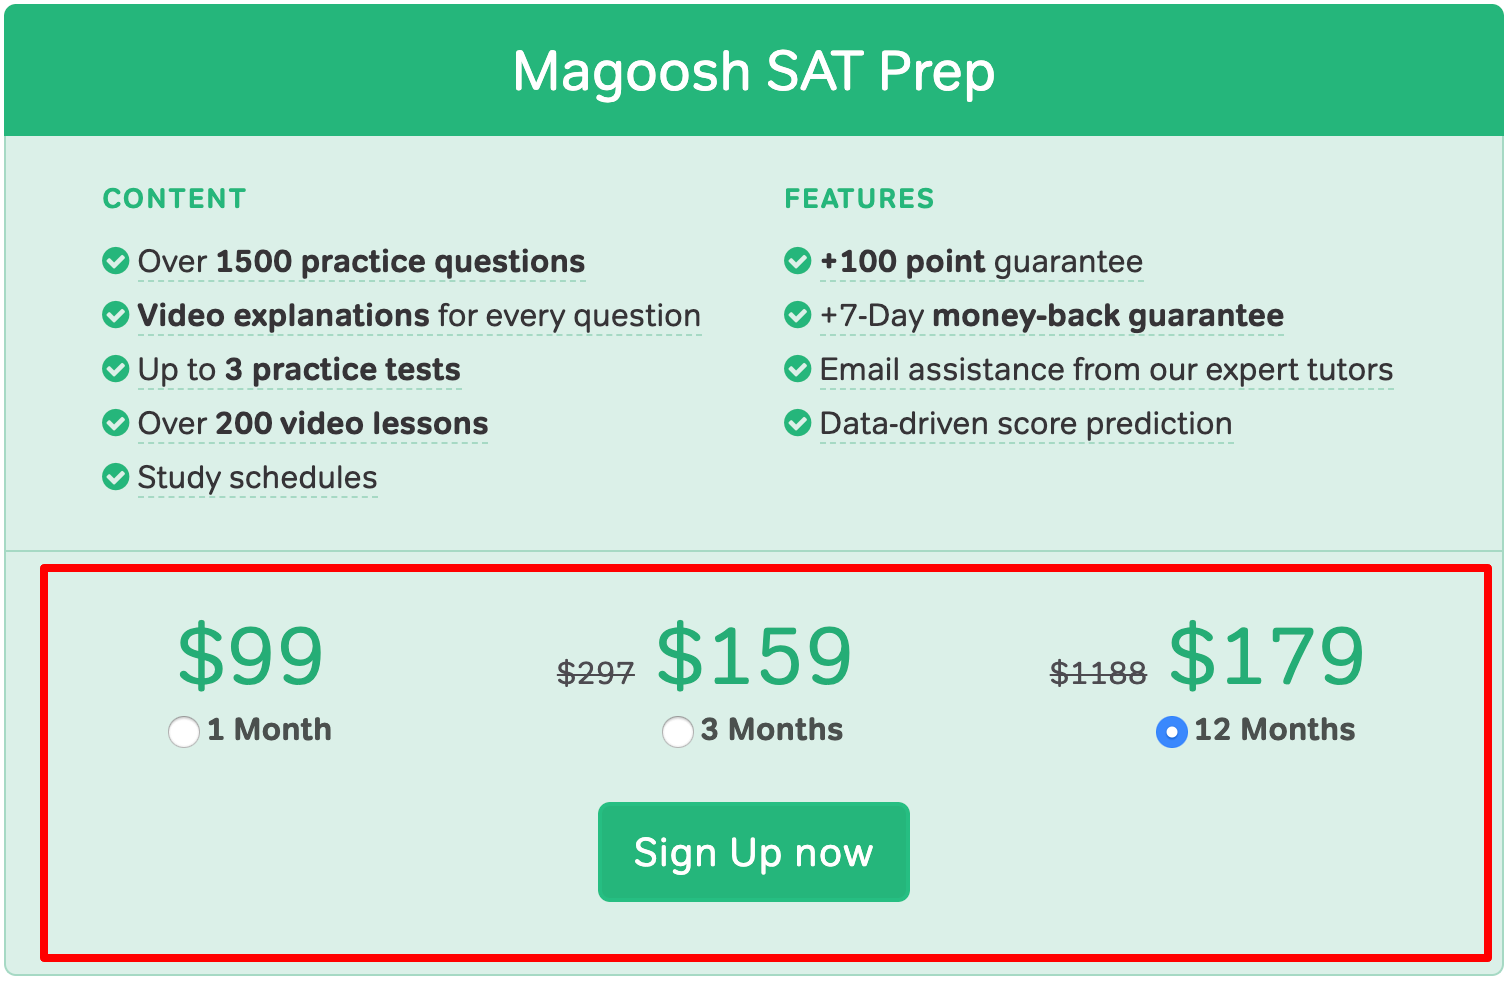 Magoosh SAT Plans- Pricing